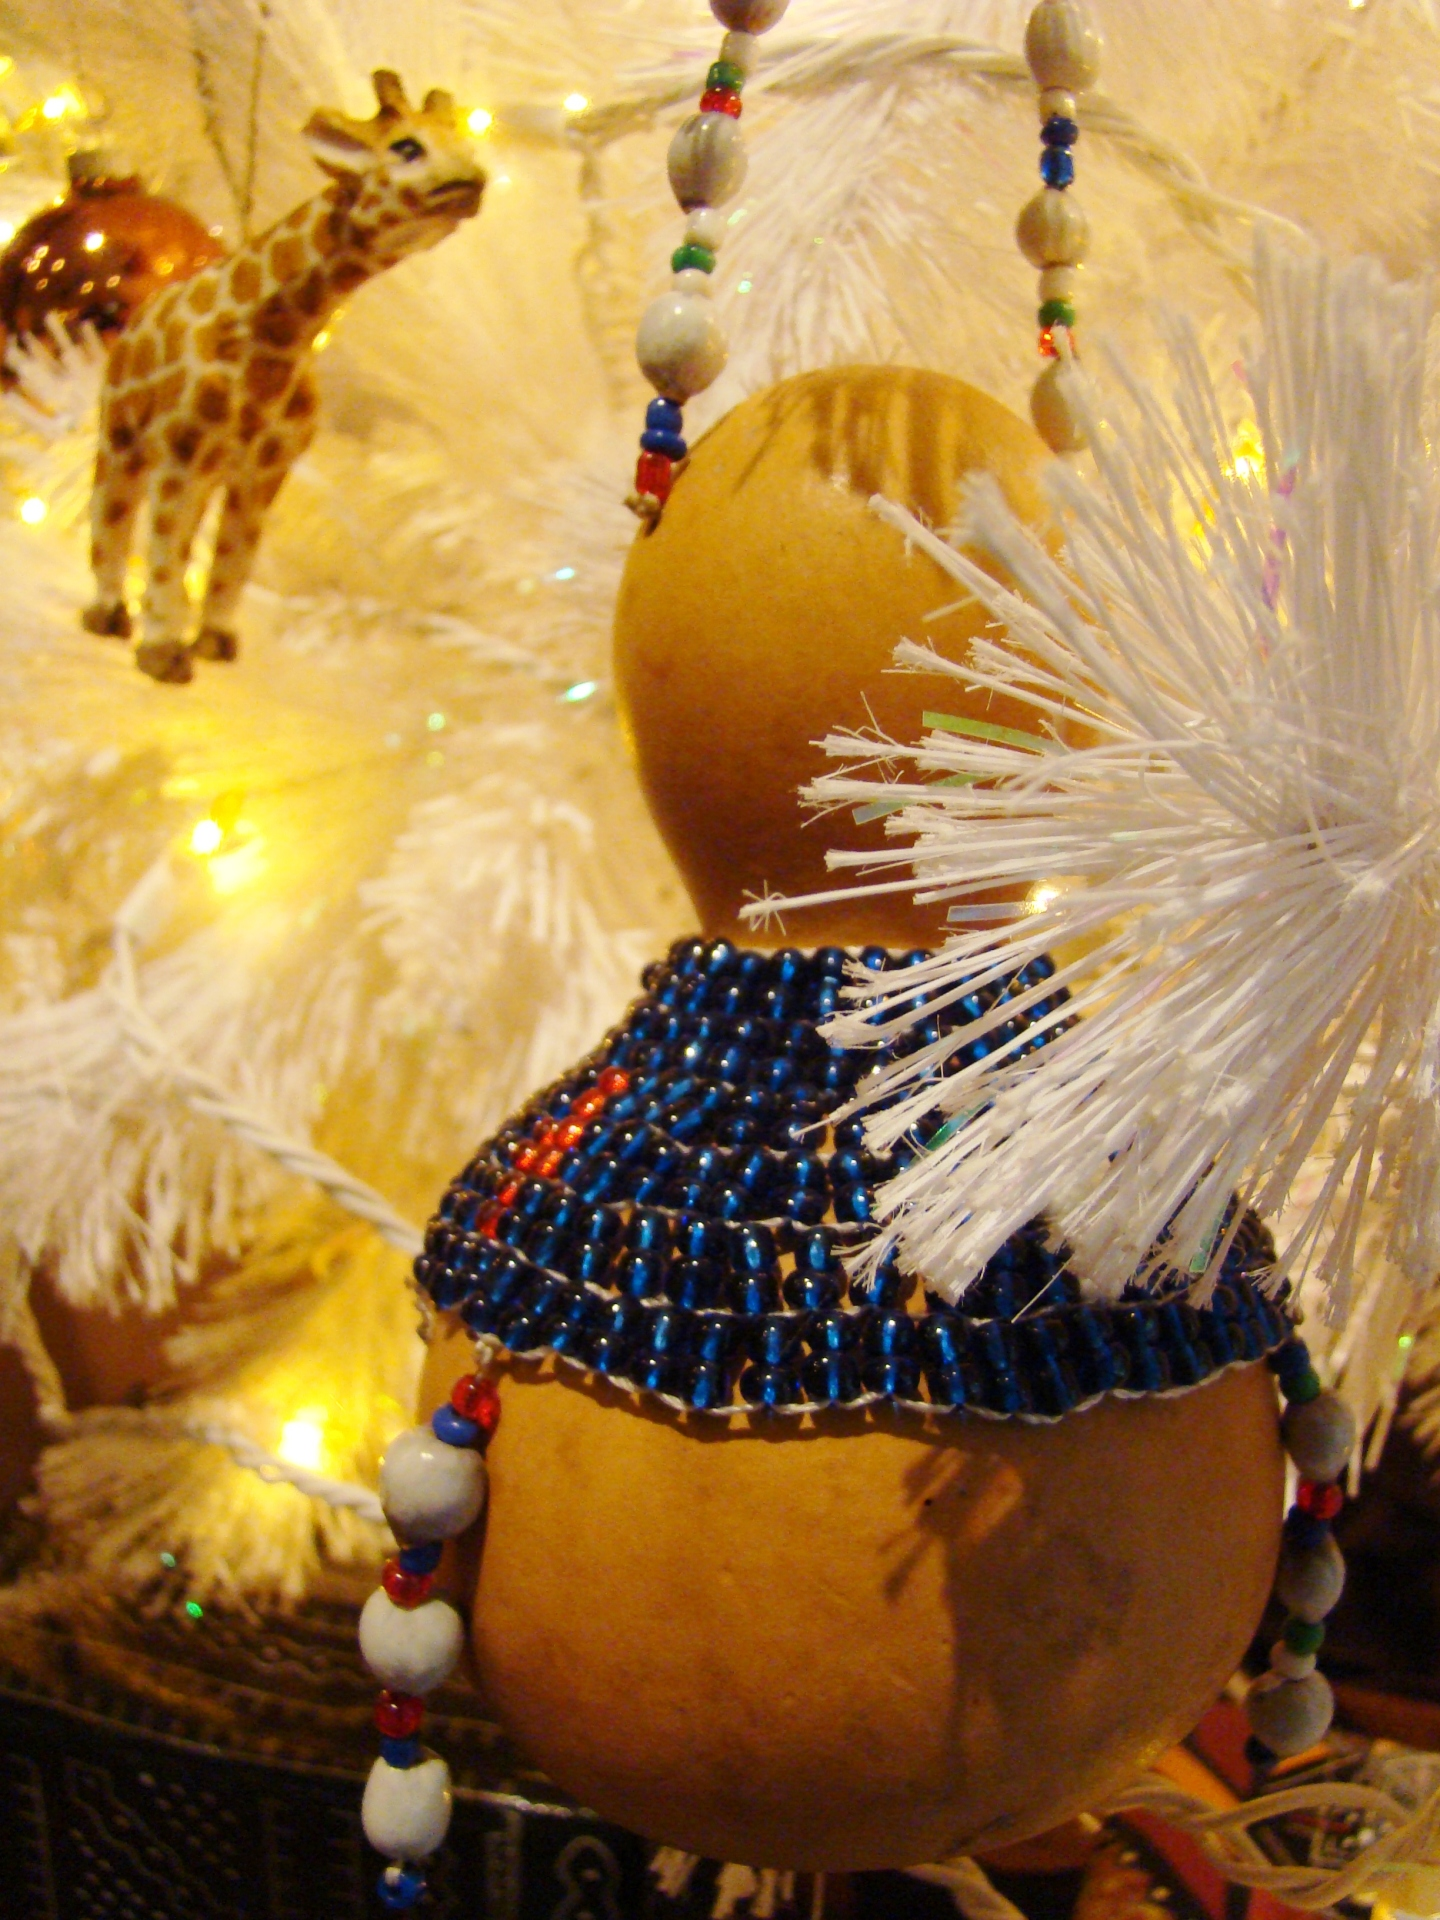 Fiorito Interior Design, interior design, Homes For The Holidays, African, holiday tree, gourd ornament